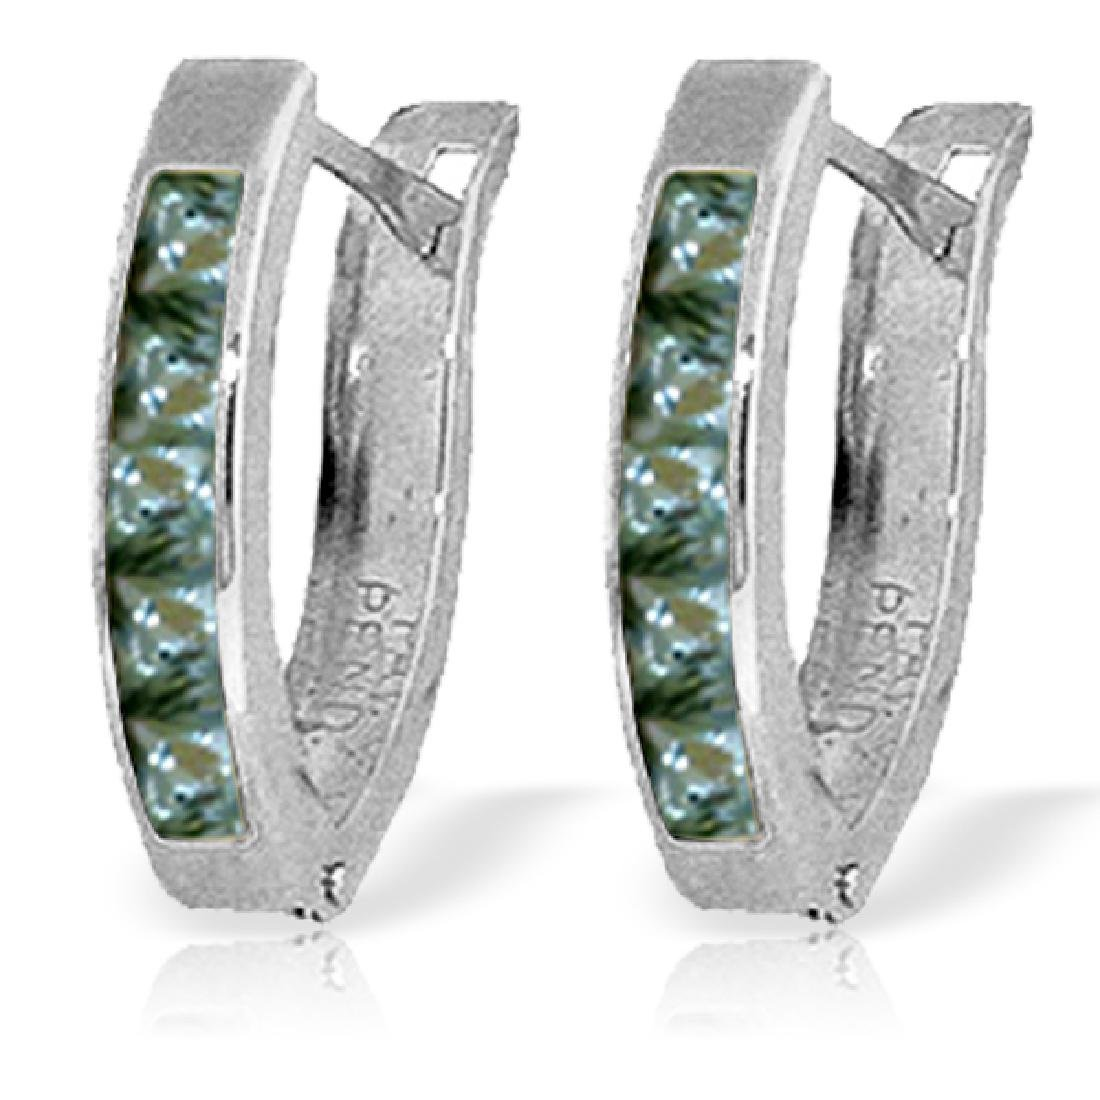 Genuine 1.30 ctw Green Sapphire Earrings Jewelry 14KT